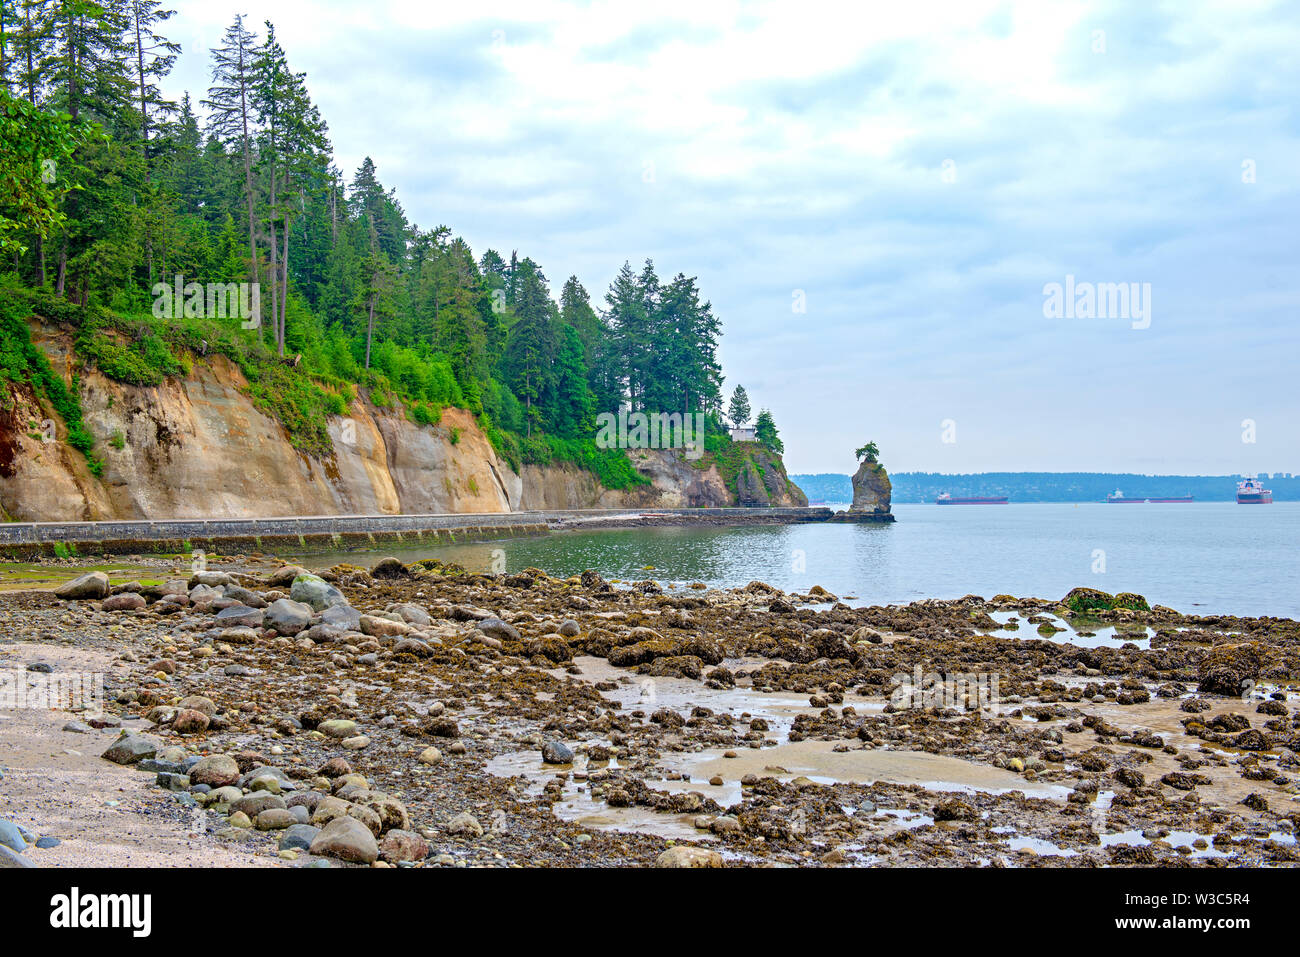 View of the Siwash Rock taken at Stanley Park seawall trail in Vancouver, BC Stock Photo